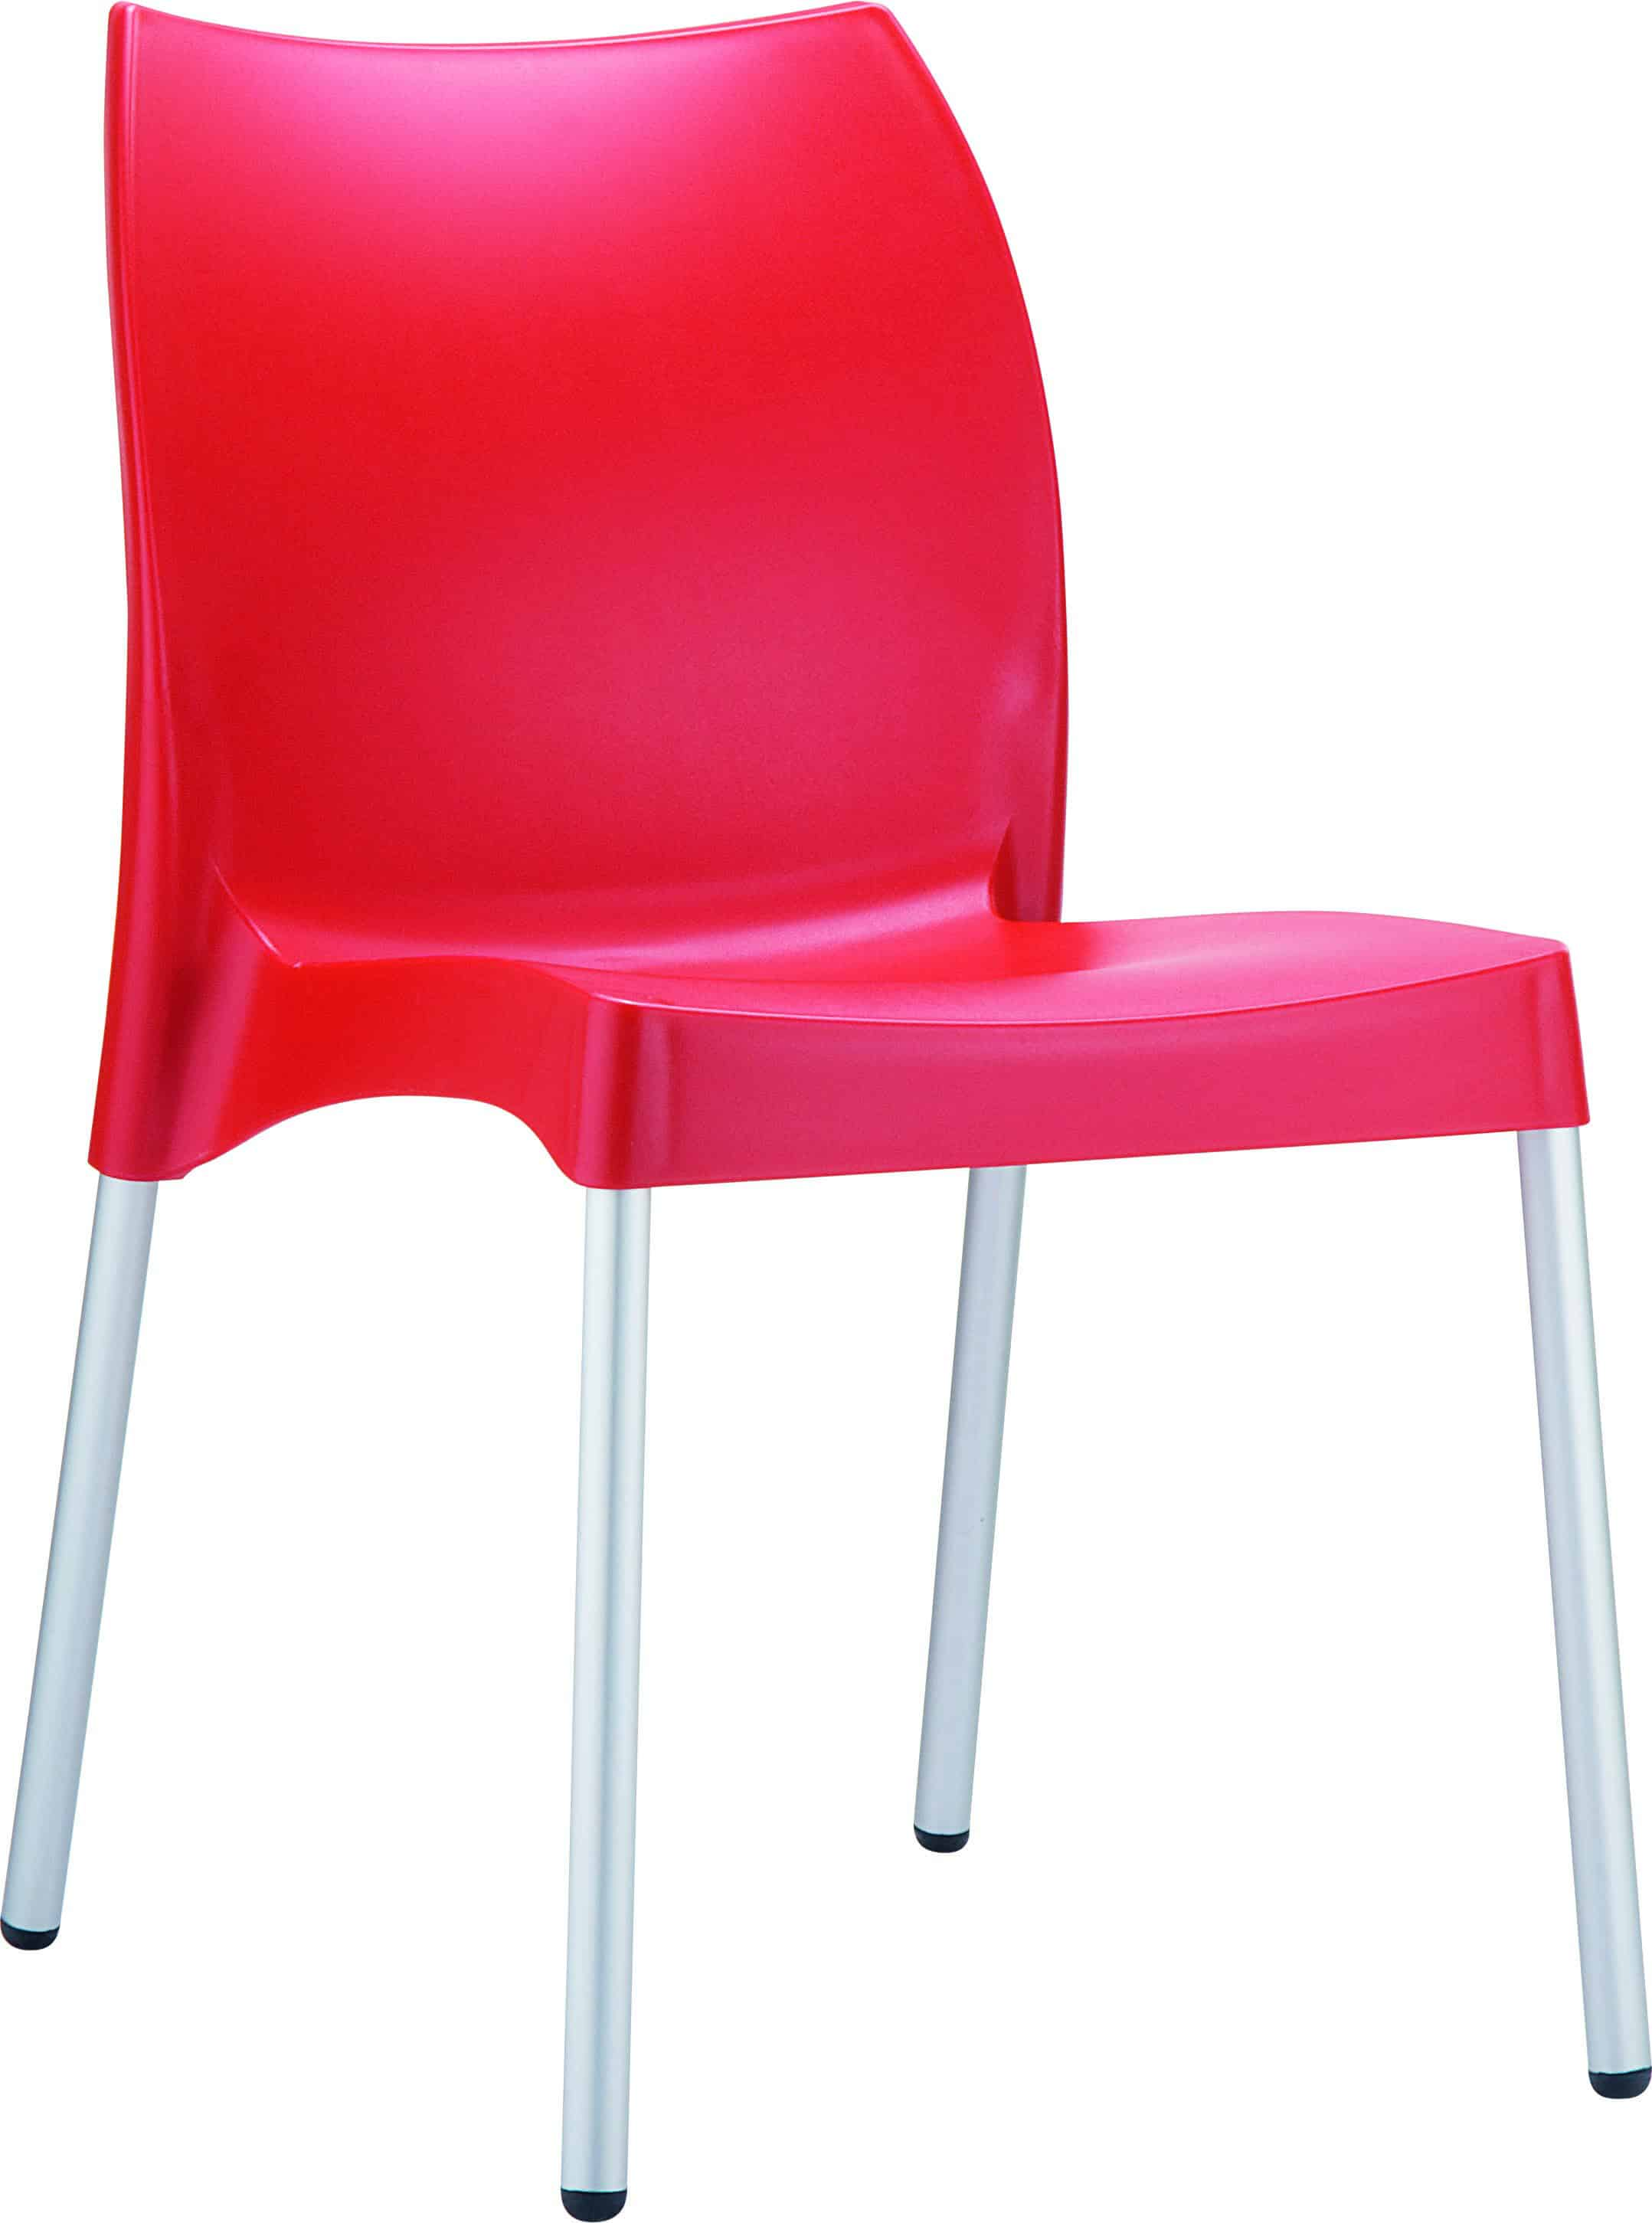 Scarlet Astray office chair